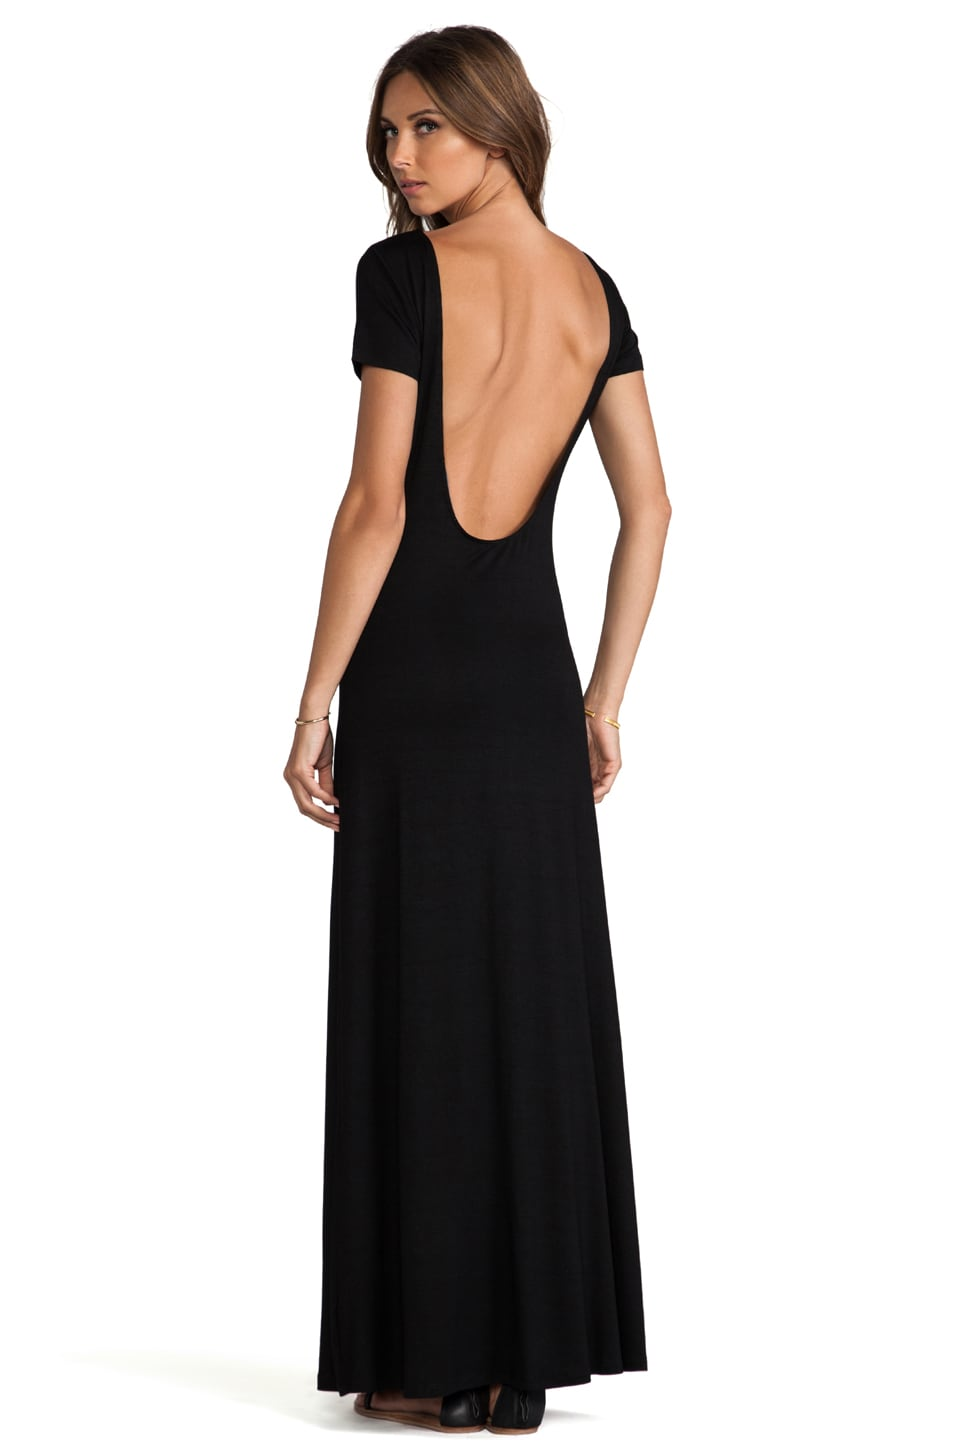 Lovers + Friends Vanity Fair Dress in Black